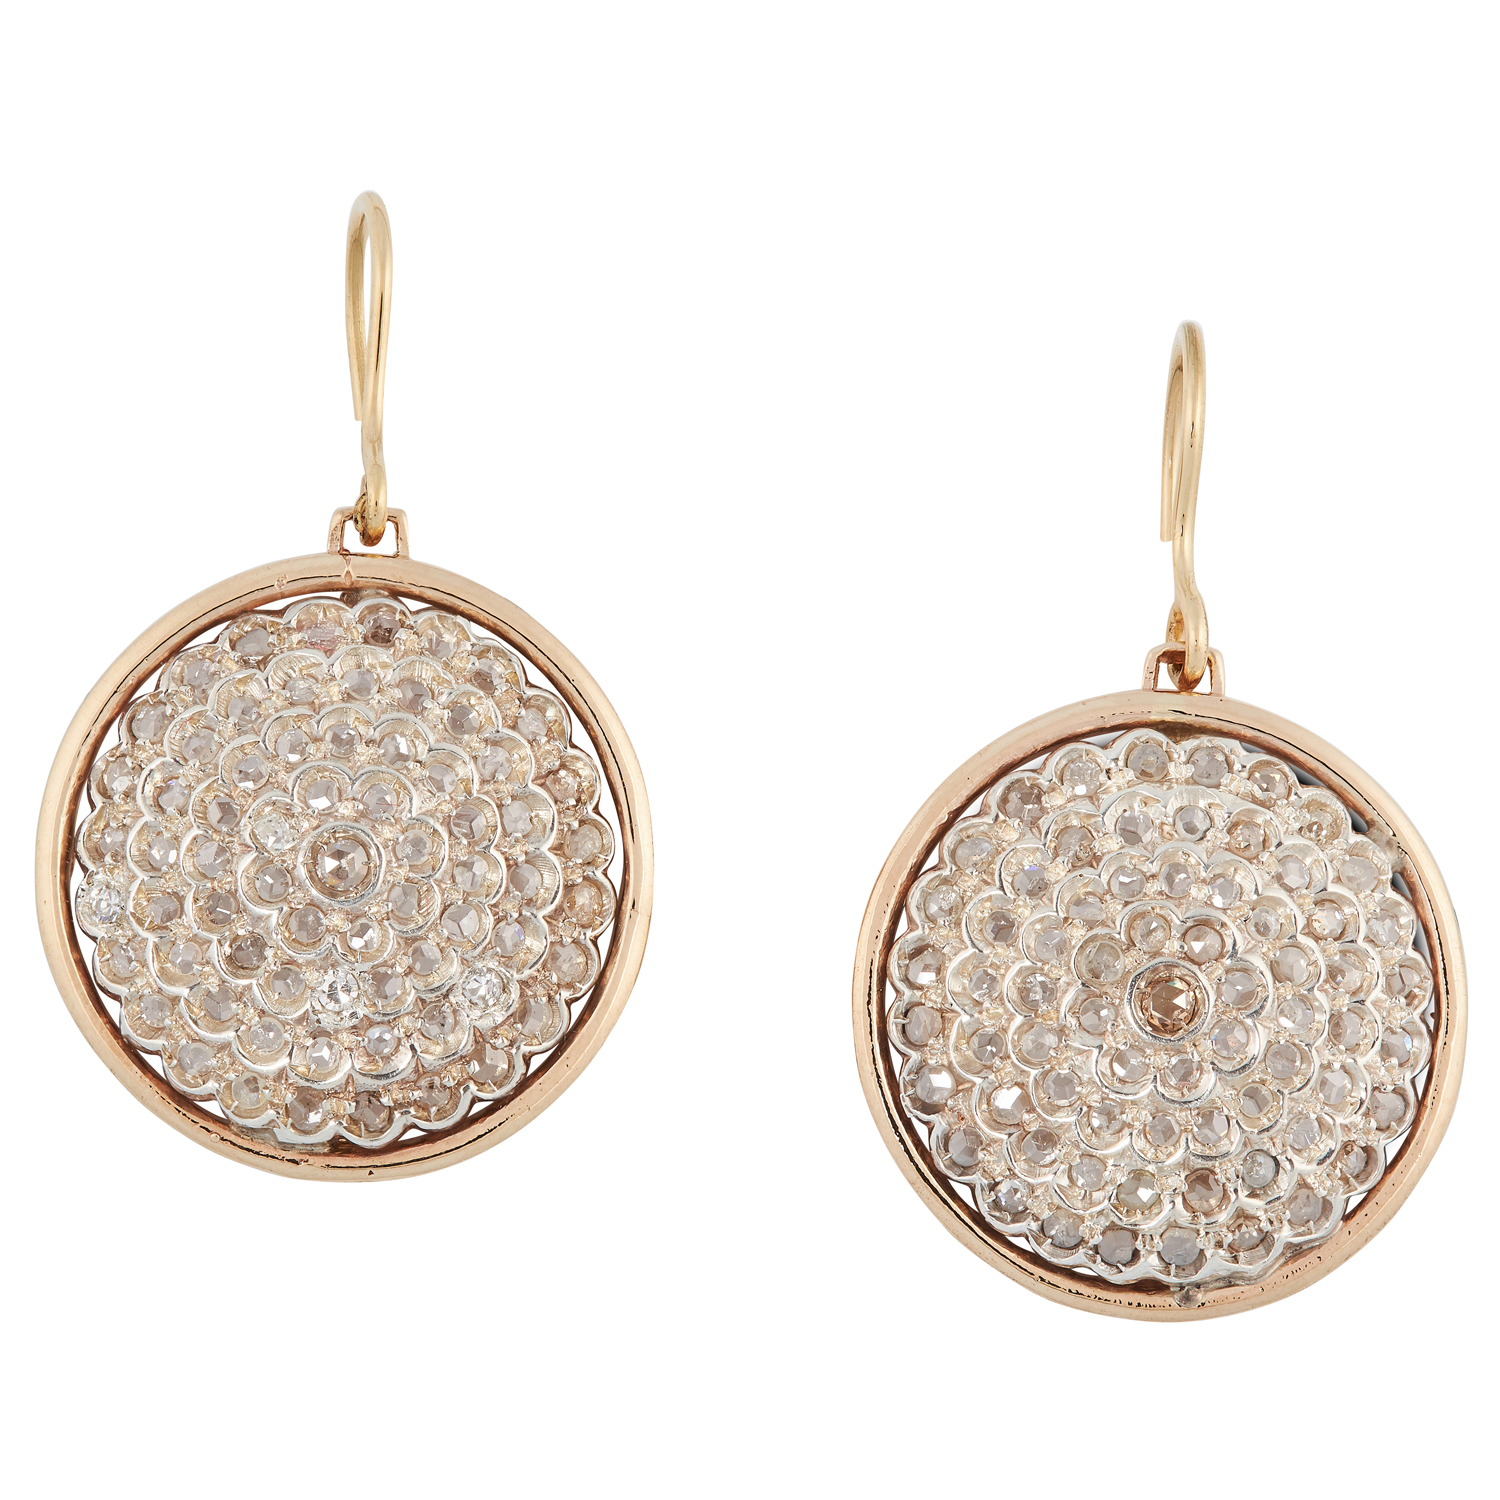 A PAIR OF DIAMOND MEDULA EARRINGS the circular face of each is pave set with rose cut diamonds, 4.